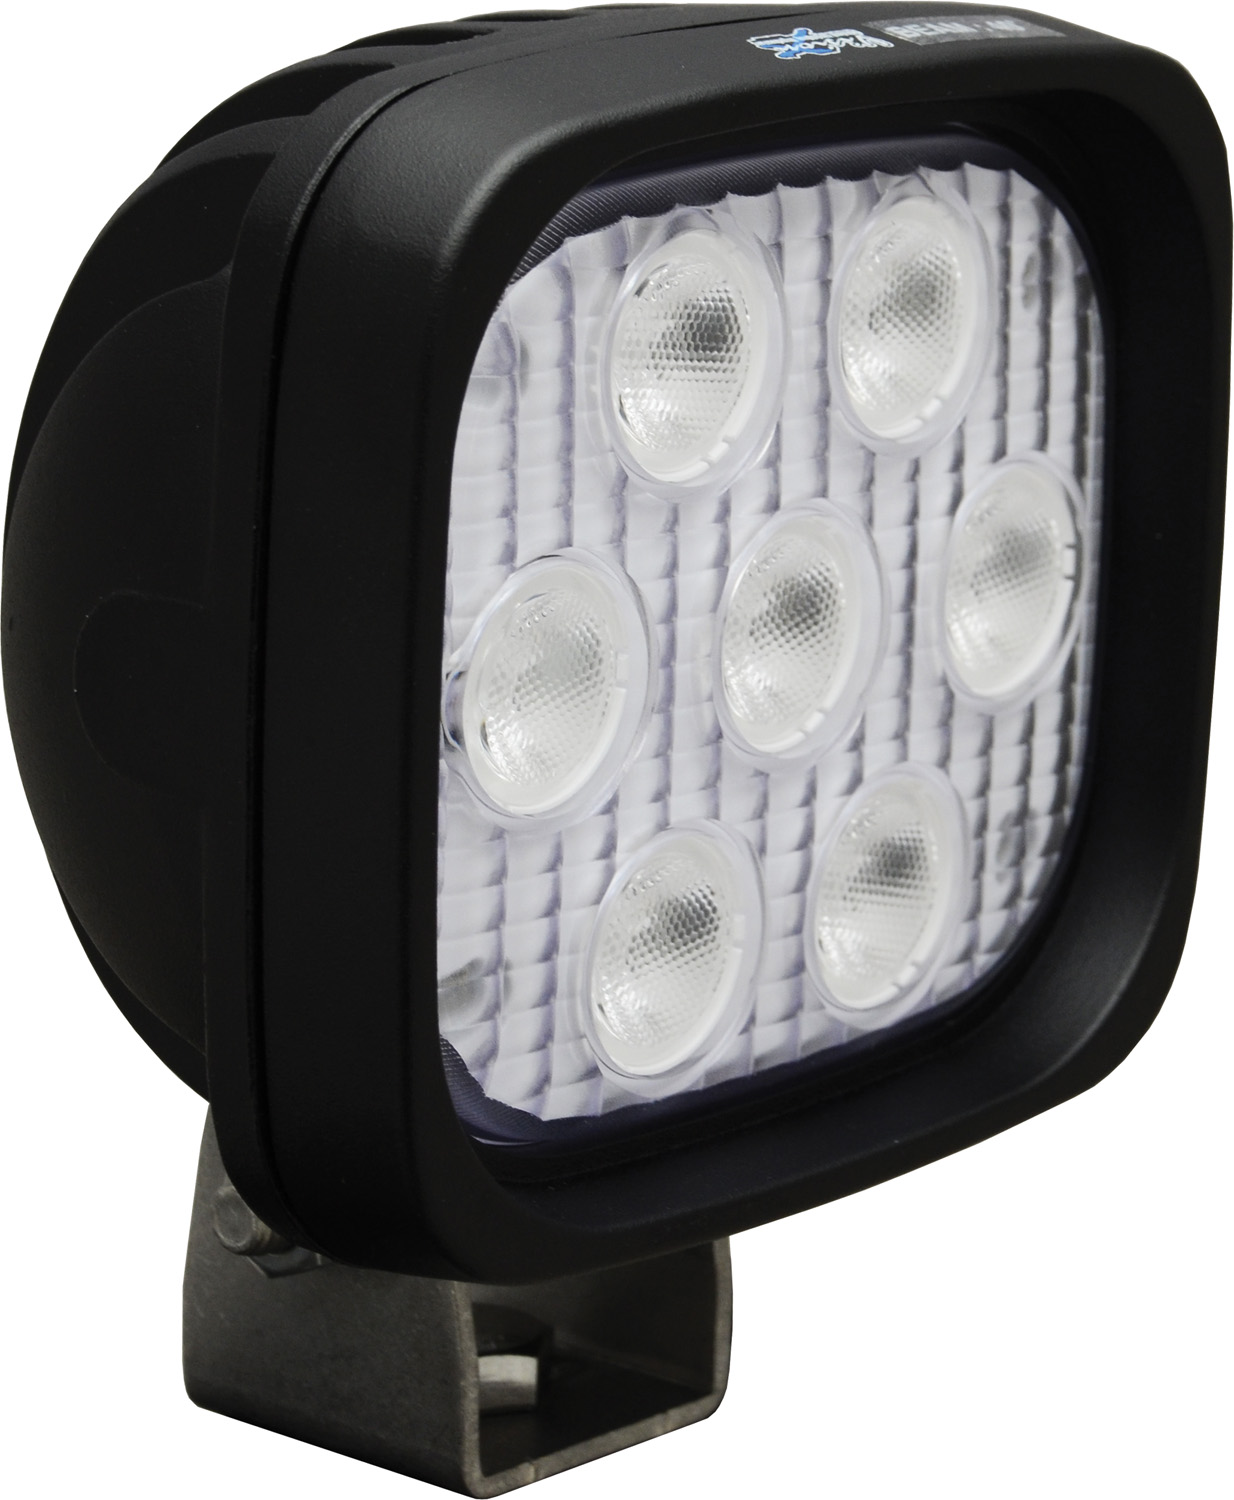 "4"" SQUARE UTILITY MARKET BLACK 7 3W AMBER LED'S 40ç WIDE"